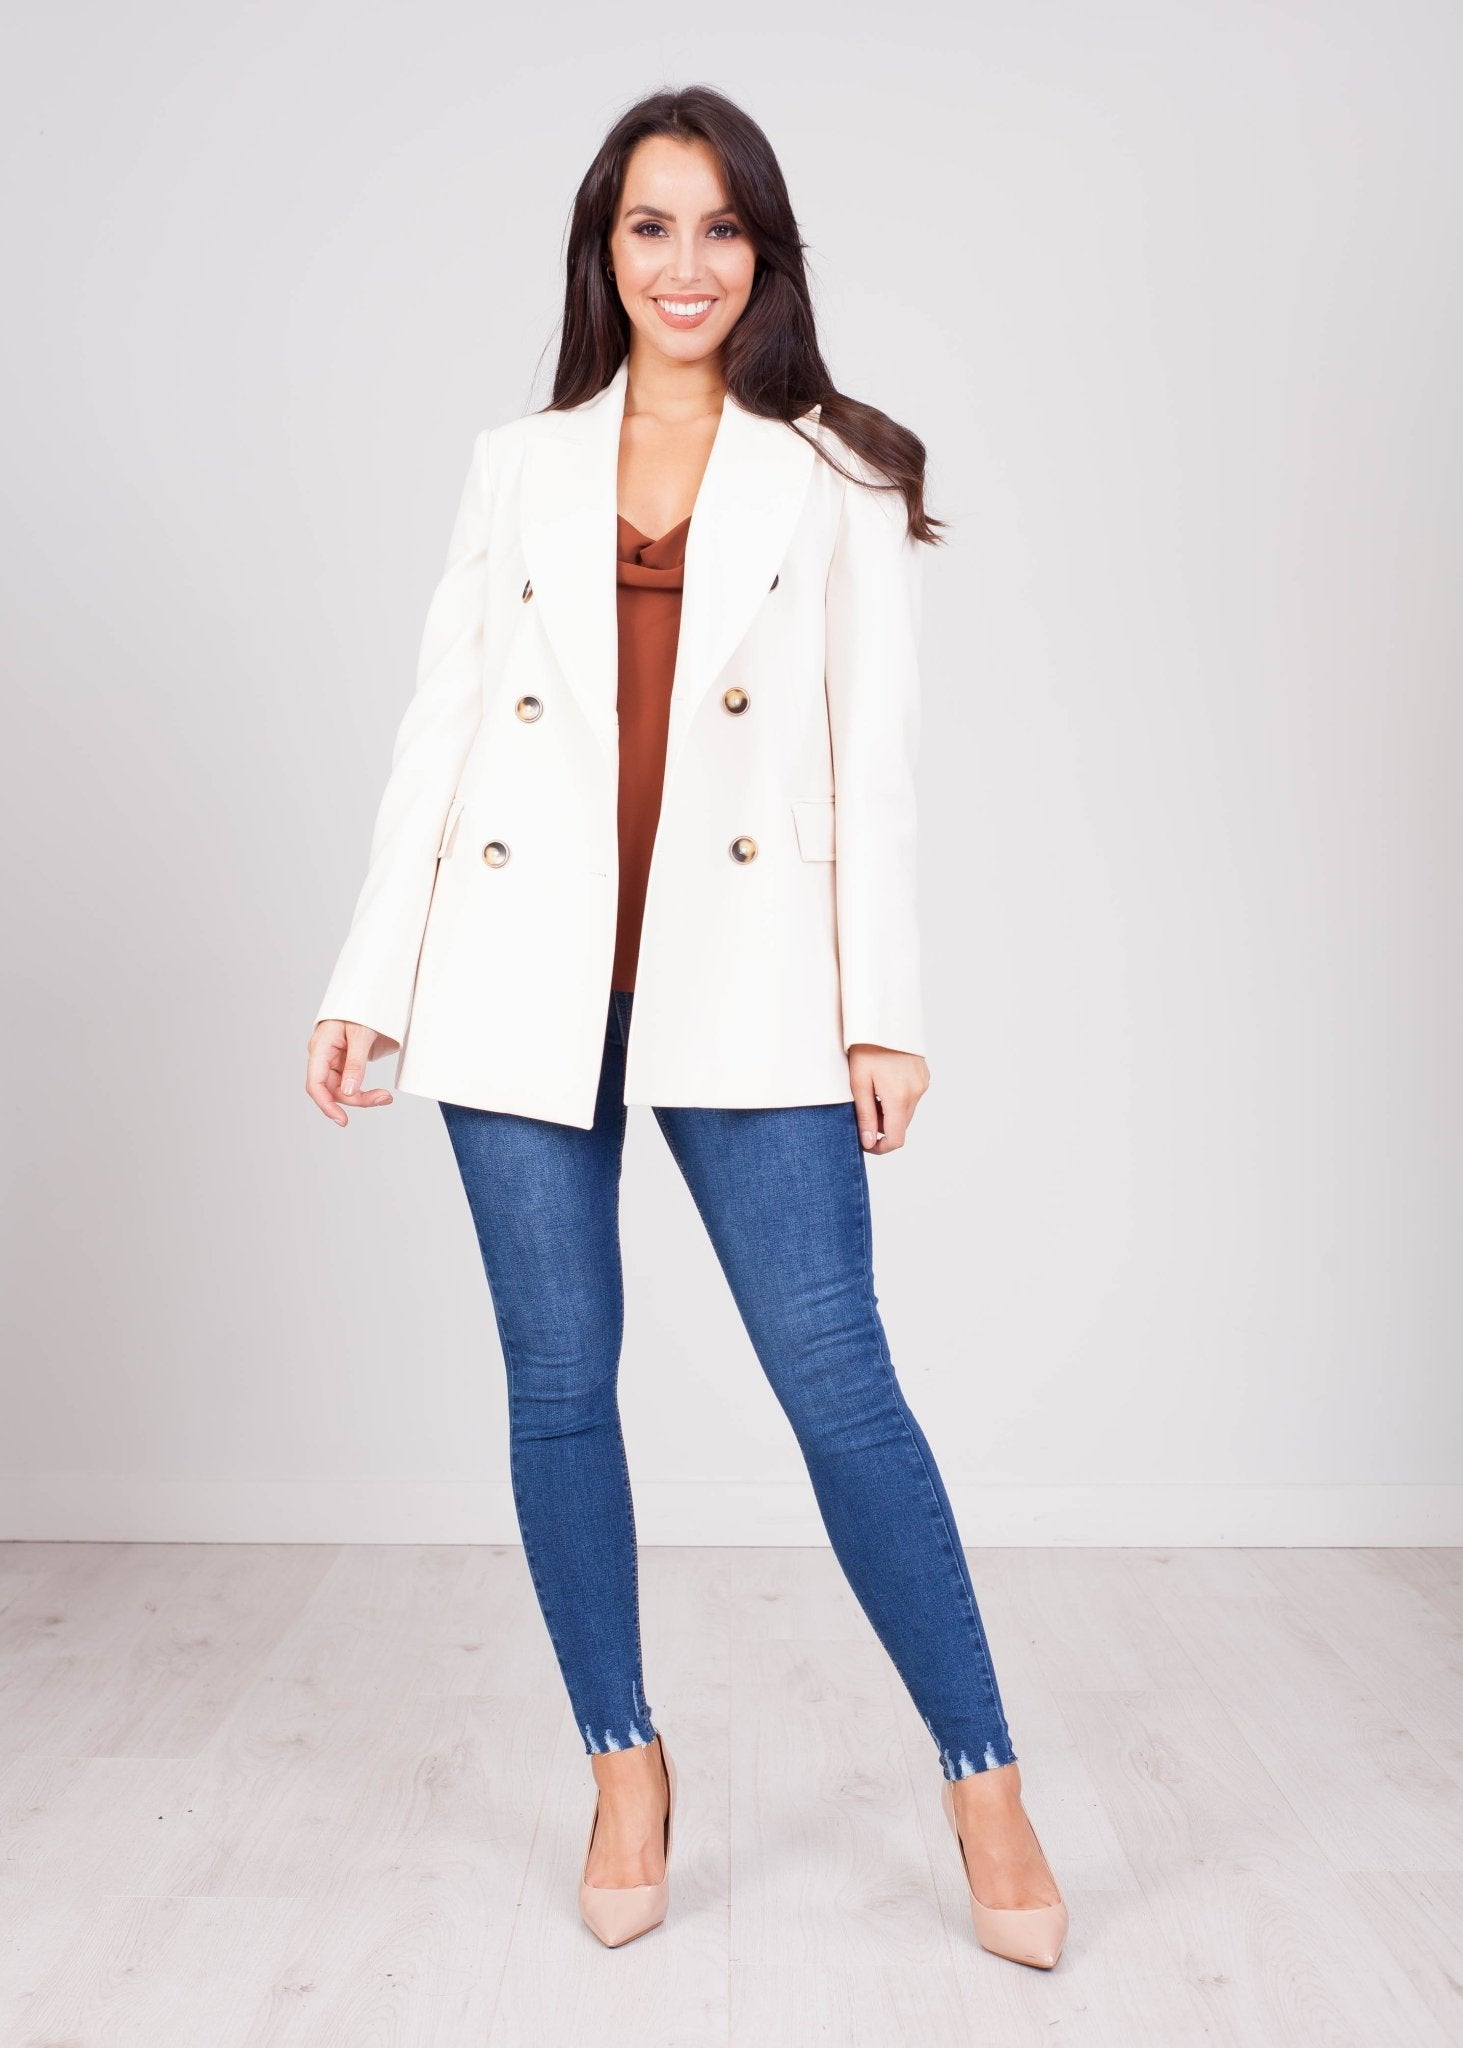 Eva Cream Blazer - The Walk in Wardrobe